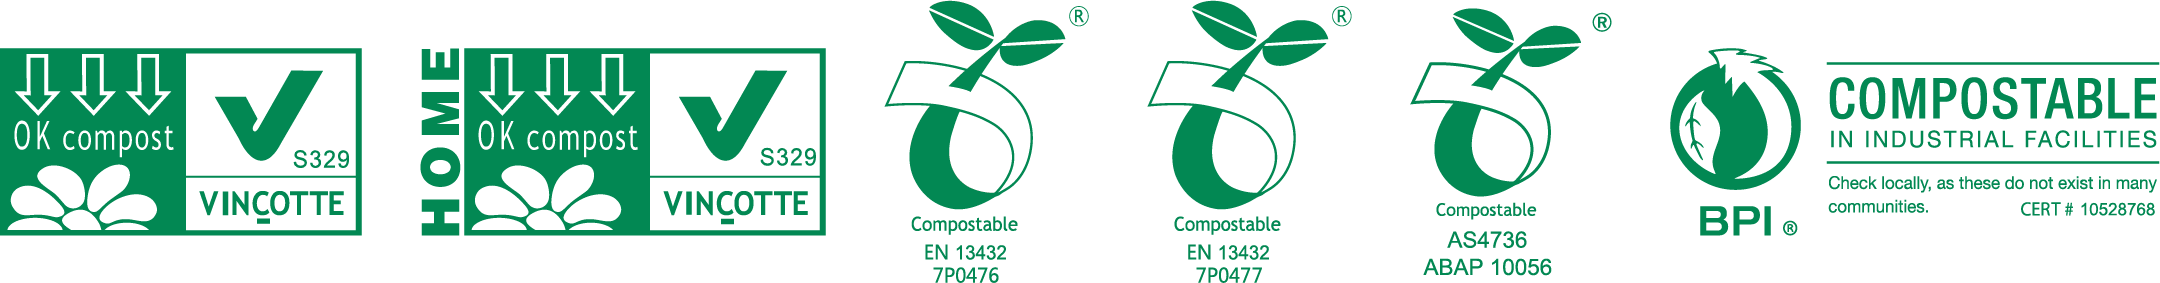 Approved Compostable Logo